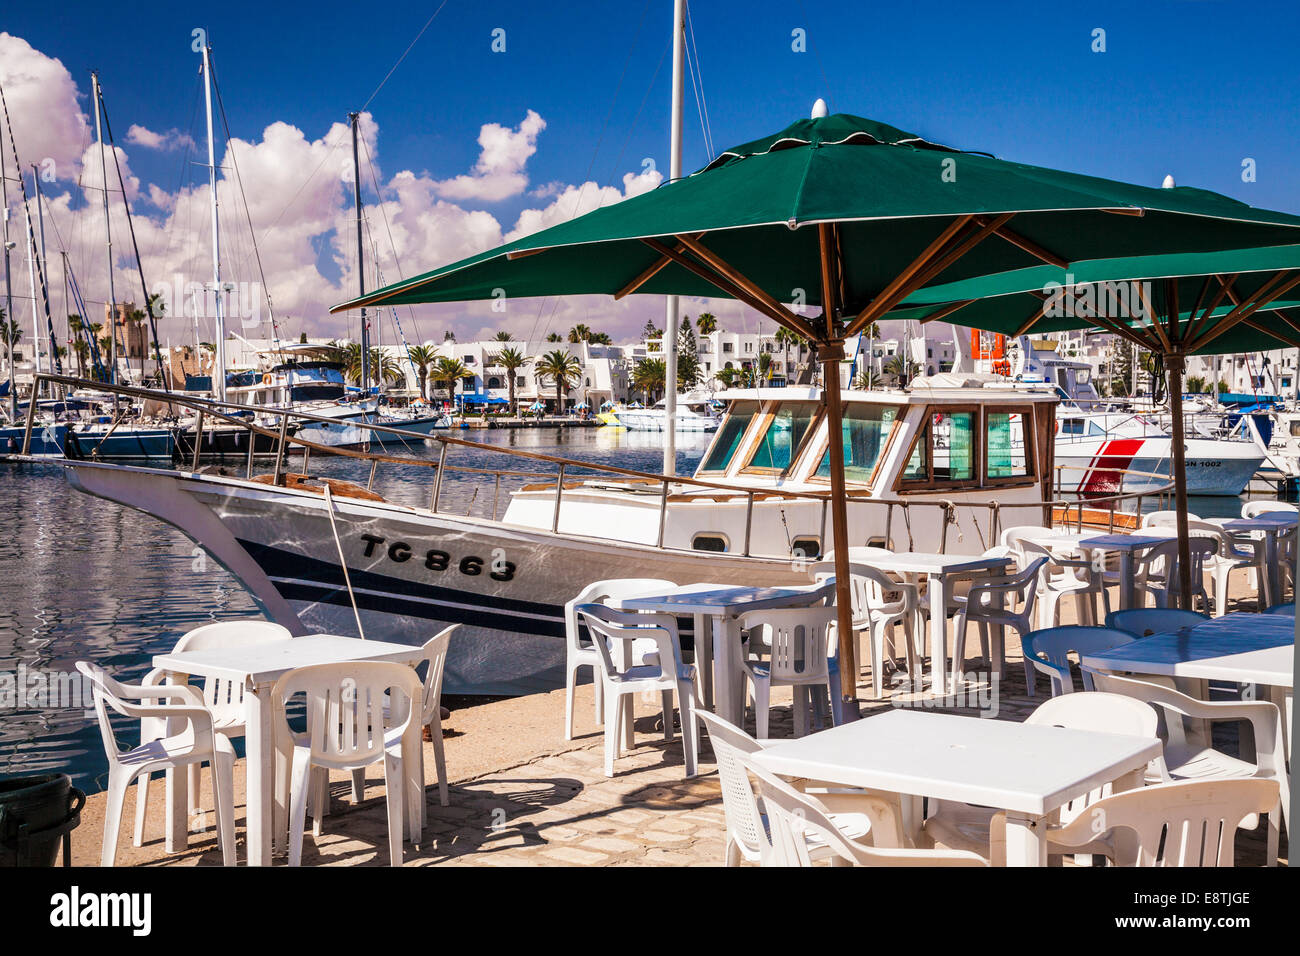 A harbourside cafe at the marina in Port el Kantoui in Tunisia. - Stock Image